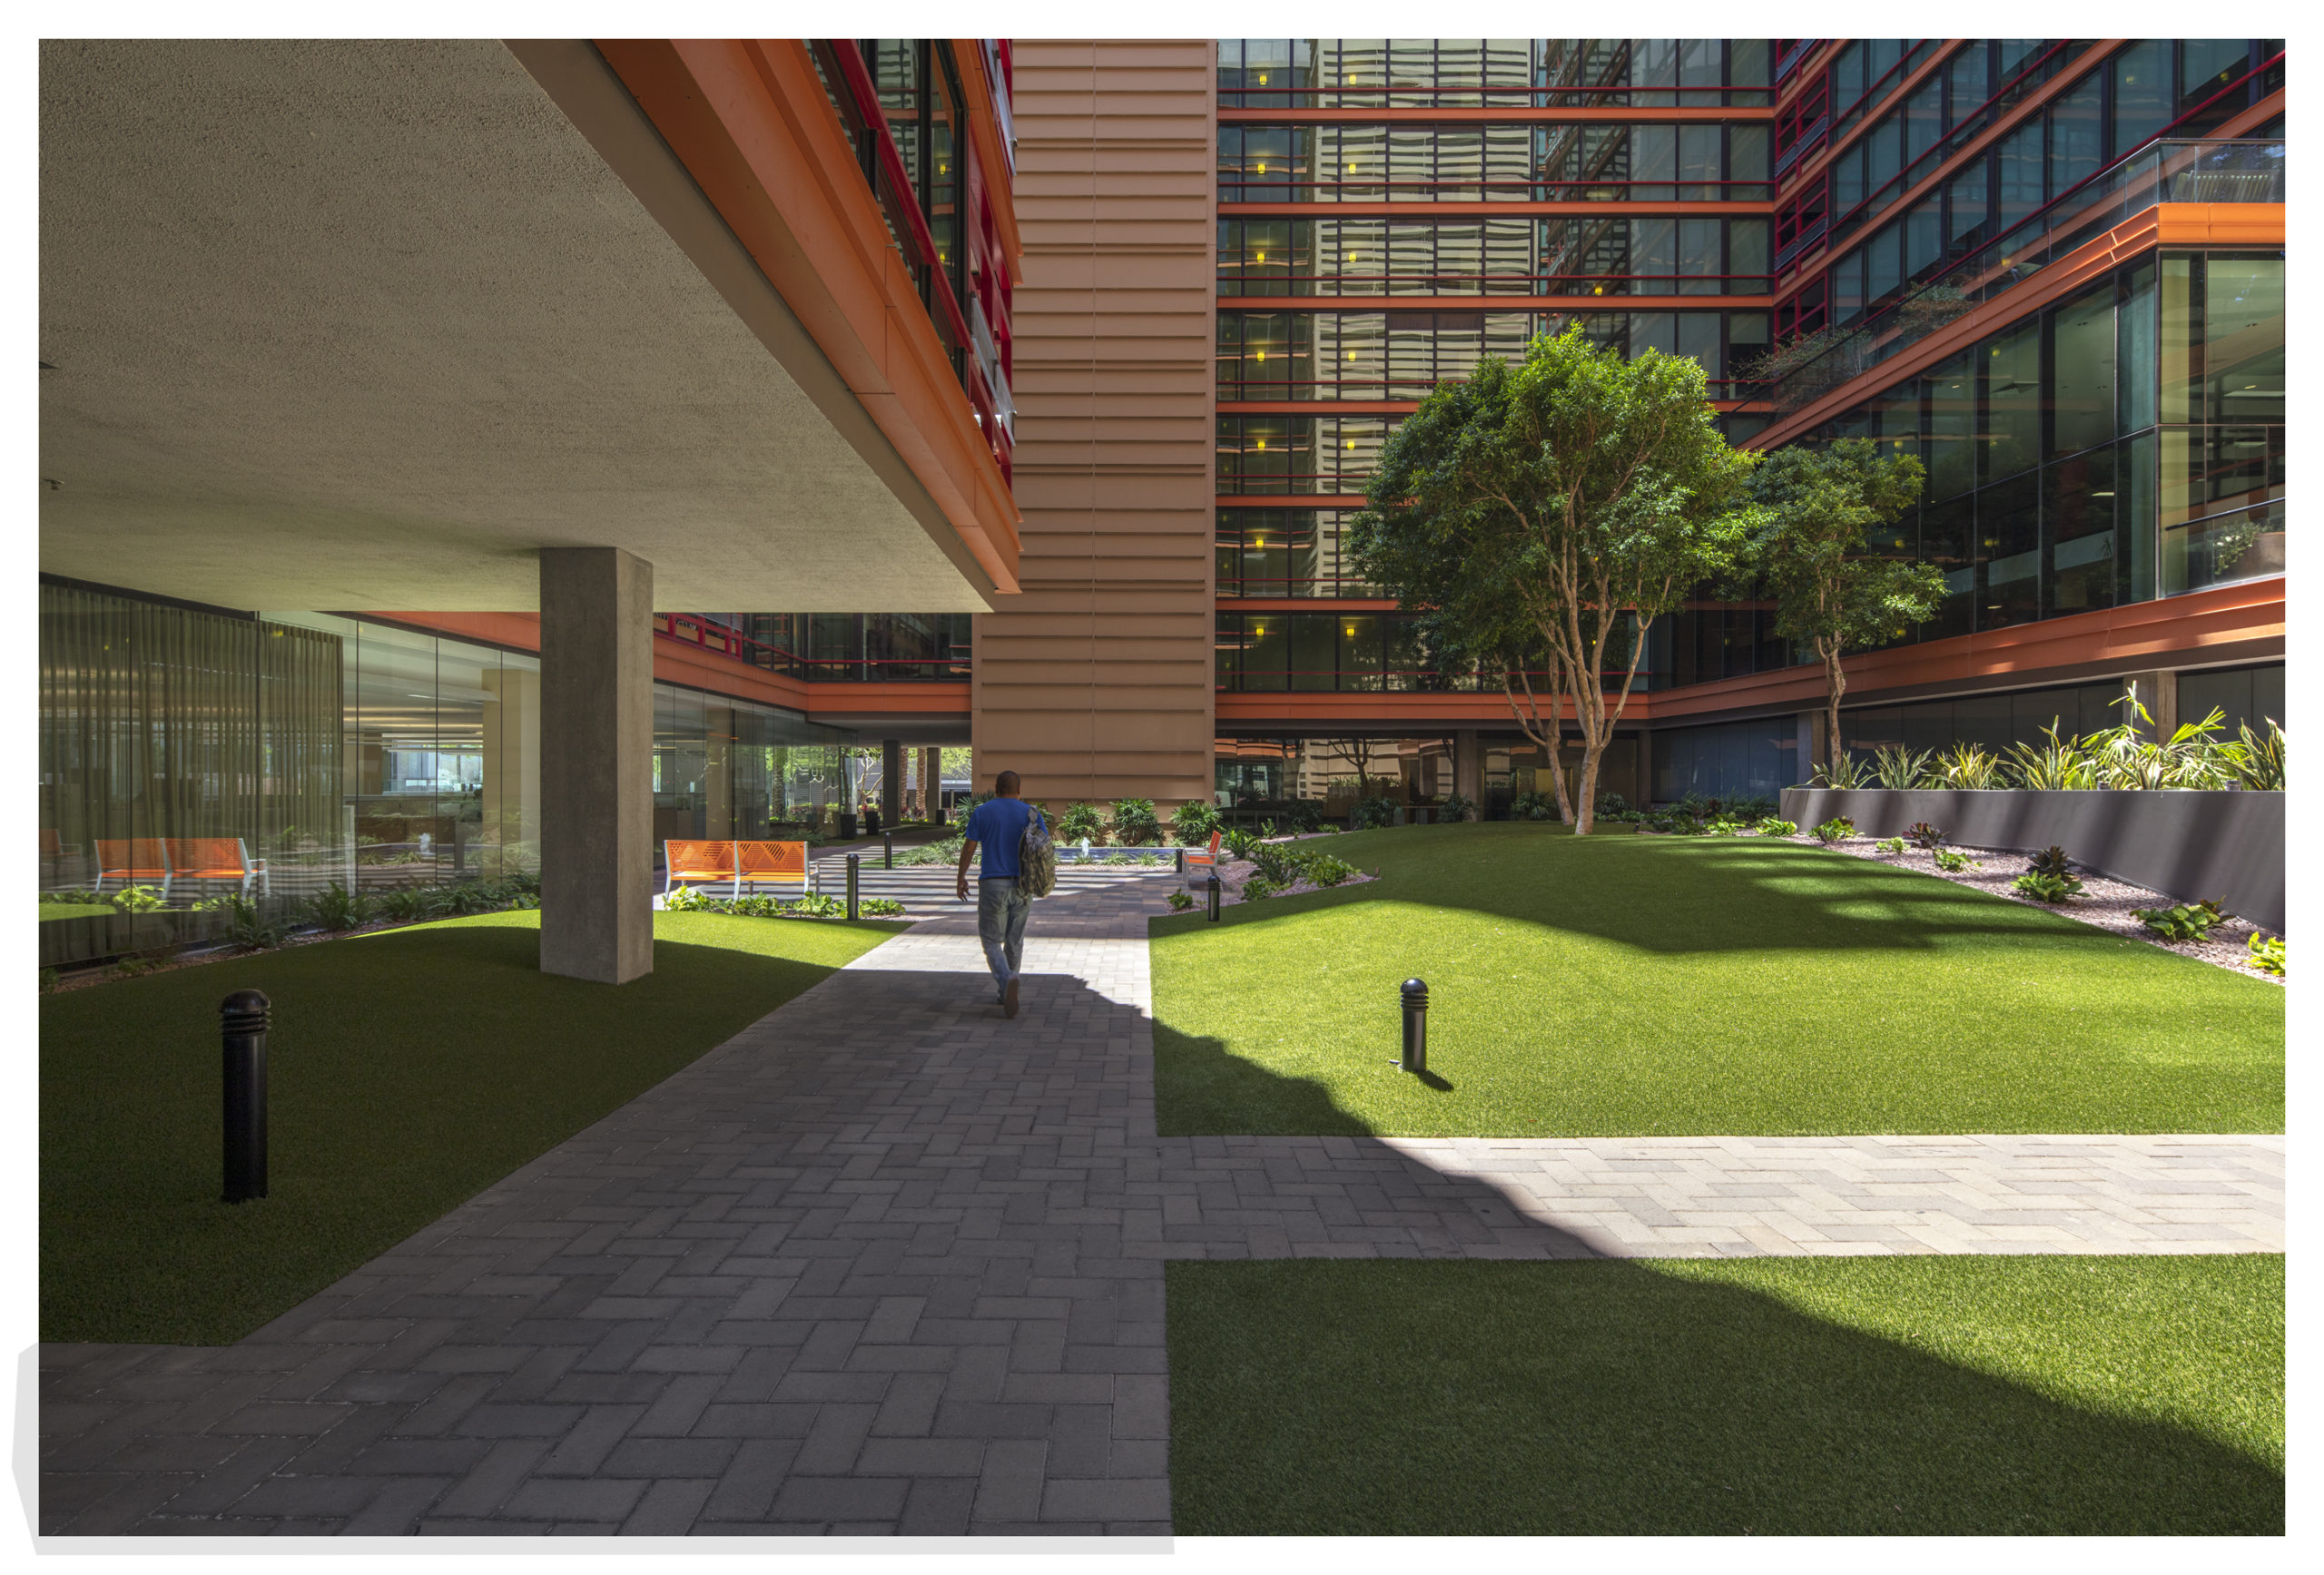 Landscaped Courtyard at Optima Biltmore Towers